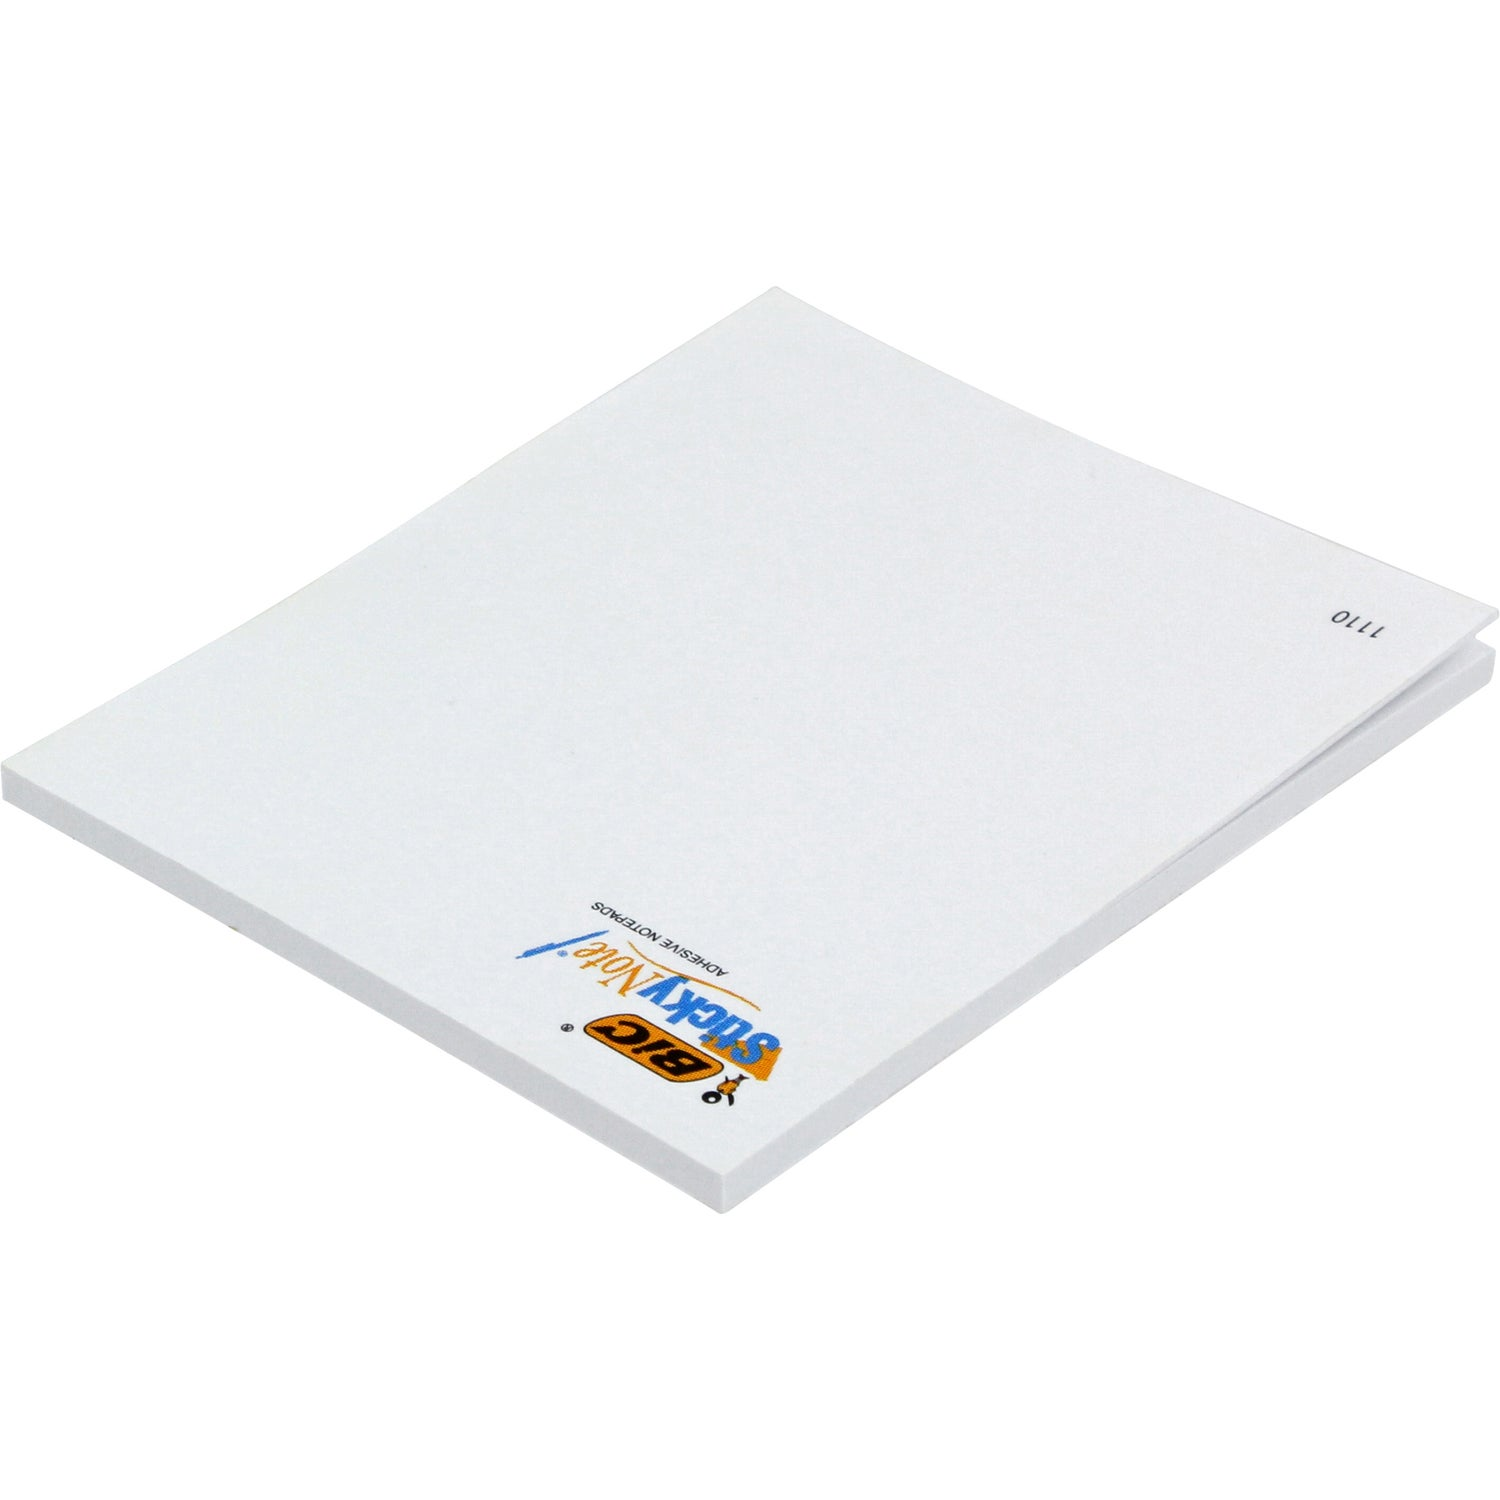 Custom Notepads Memo Pads: Adhesive Sticky Note Pads (2 1/2 X 3 Inches W/ 25 Sheets